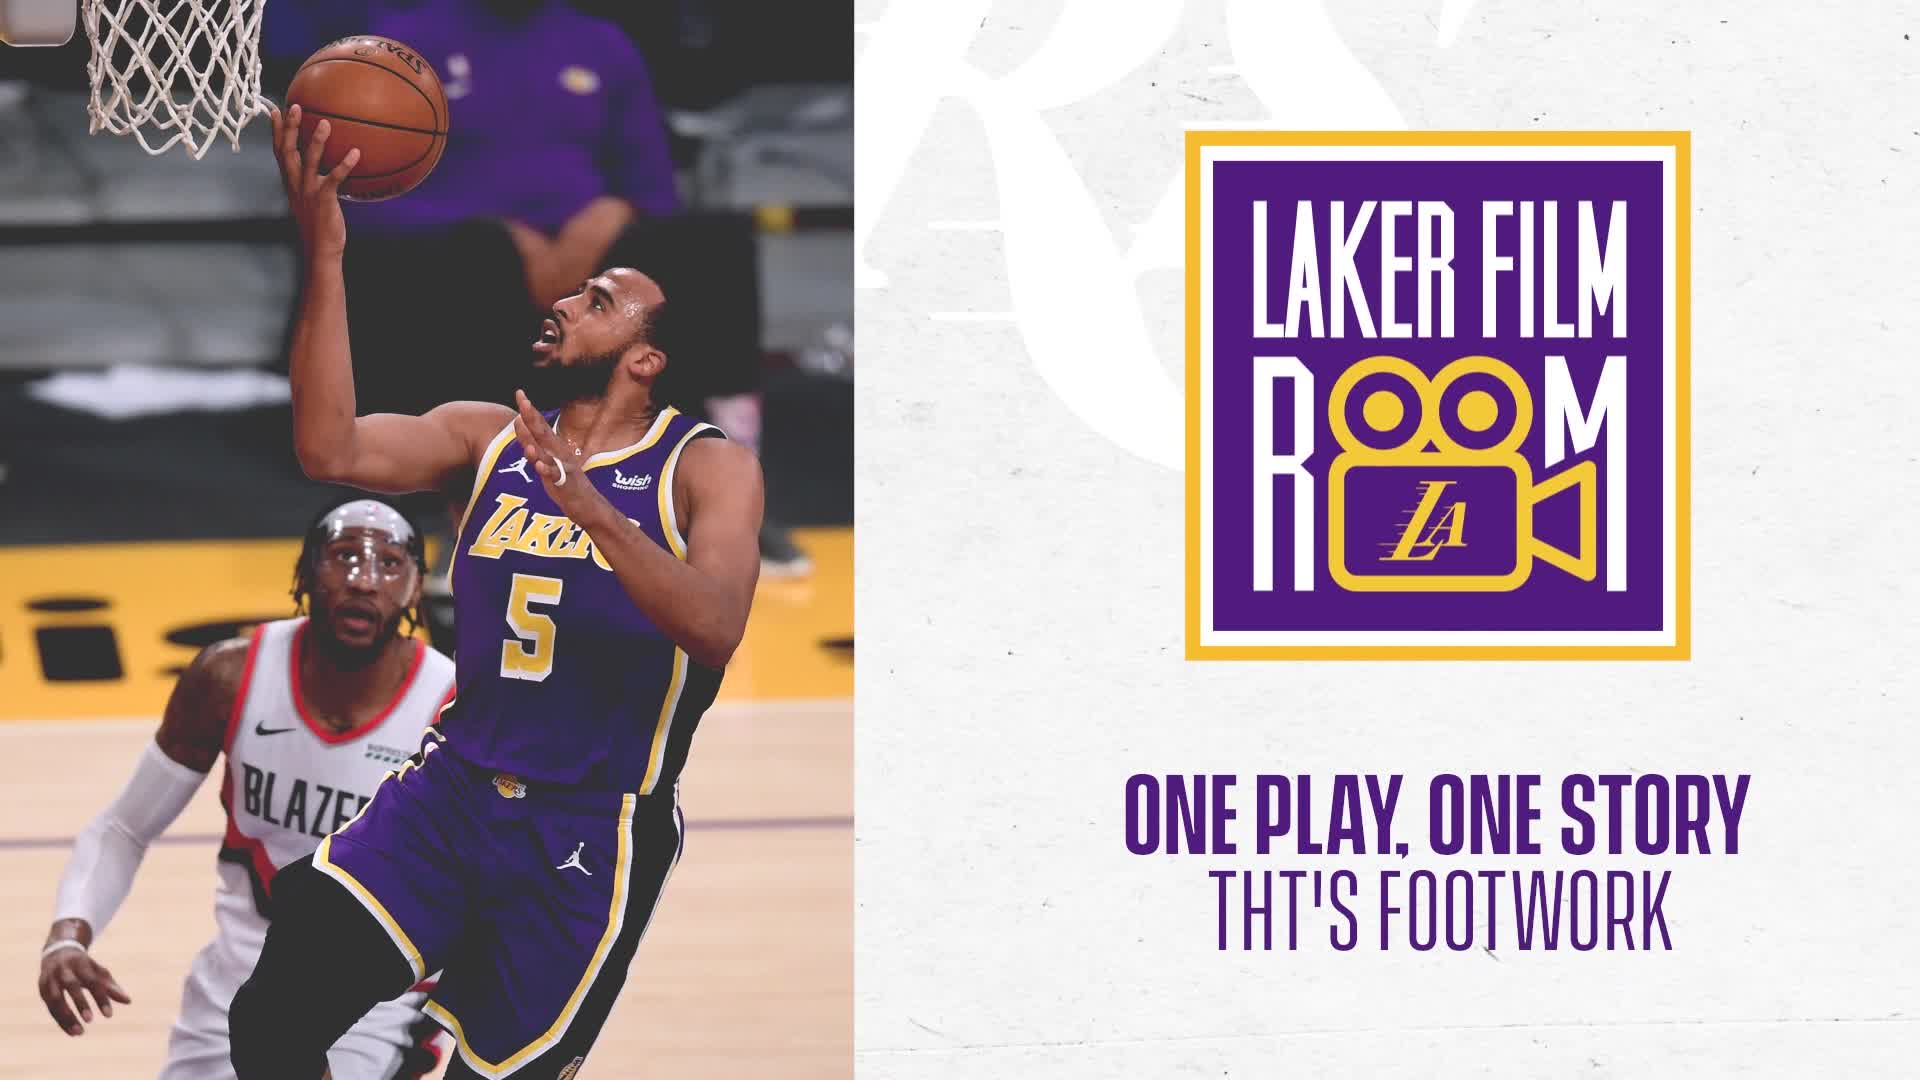 Laker Film Room: One Play, One Story - THT's Footwork